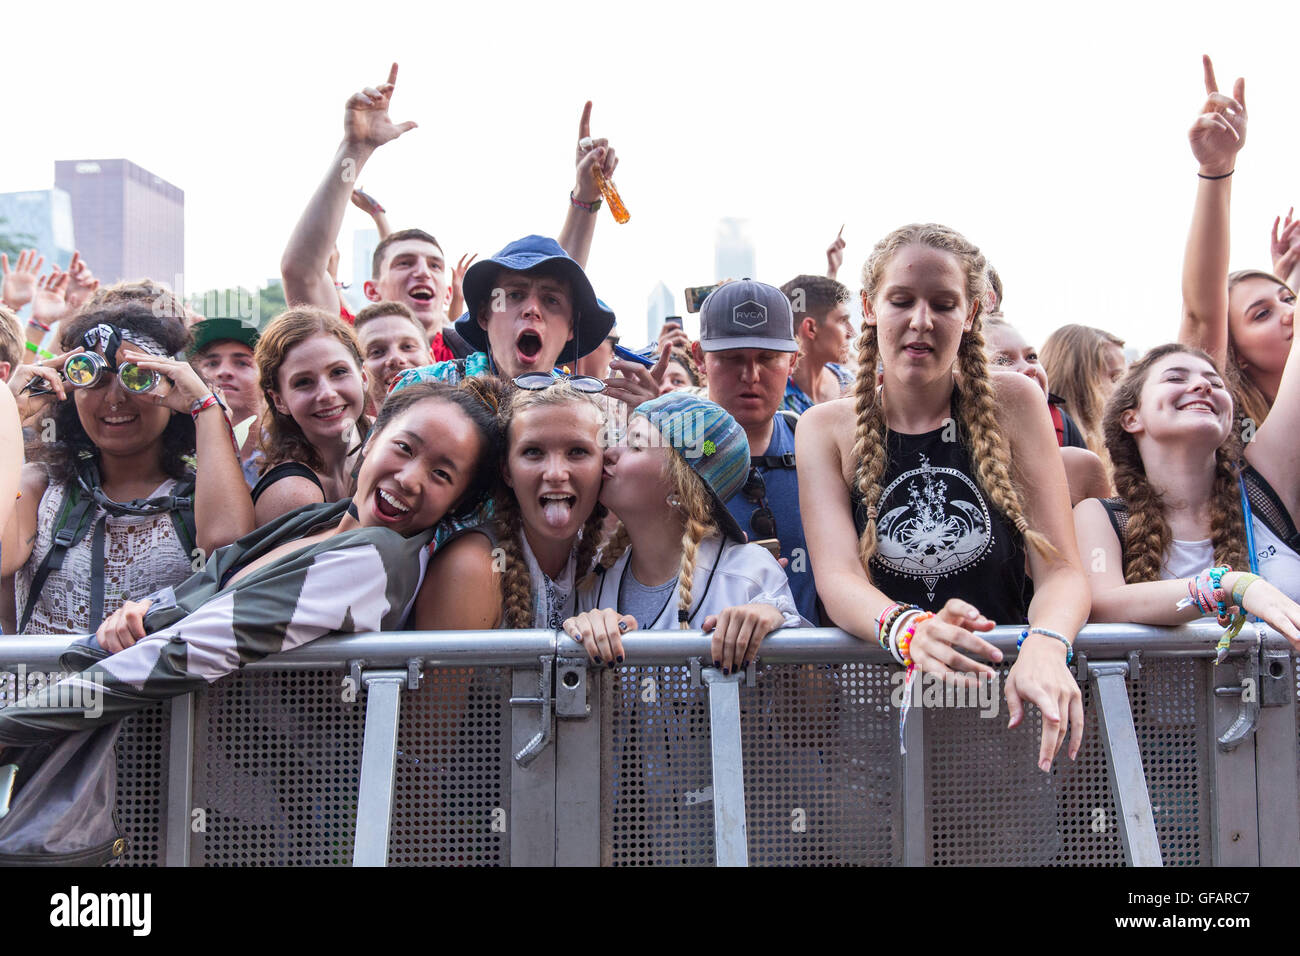 Chicago, Illinois, USA. 29th July, 2016. Music fans enjoy the dance party on Perry's stage during Lollapalooza - Stock Image